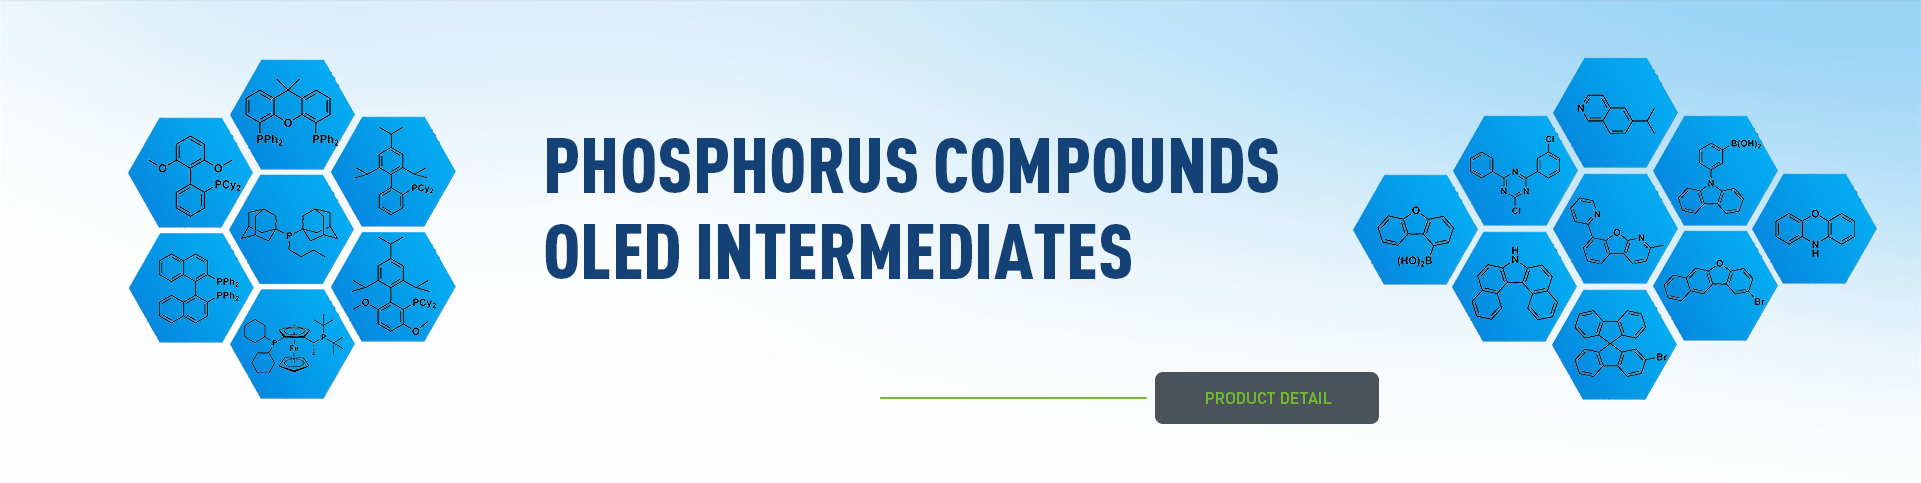 PHOSPHORUS COMPOUNDS OLED INTERMEDIATES